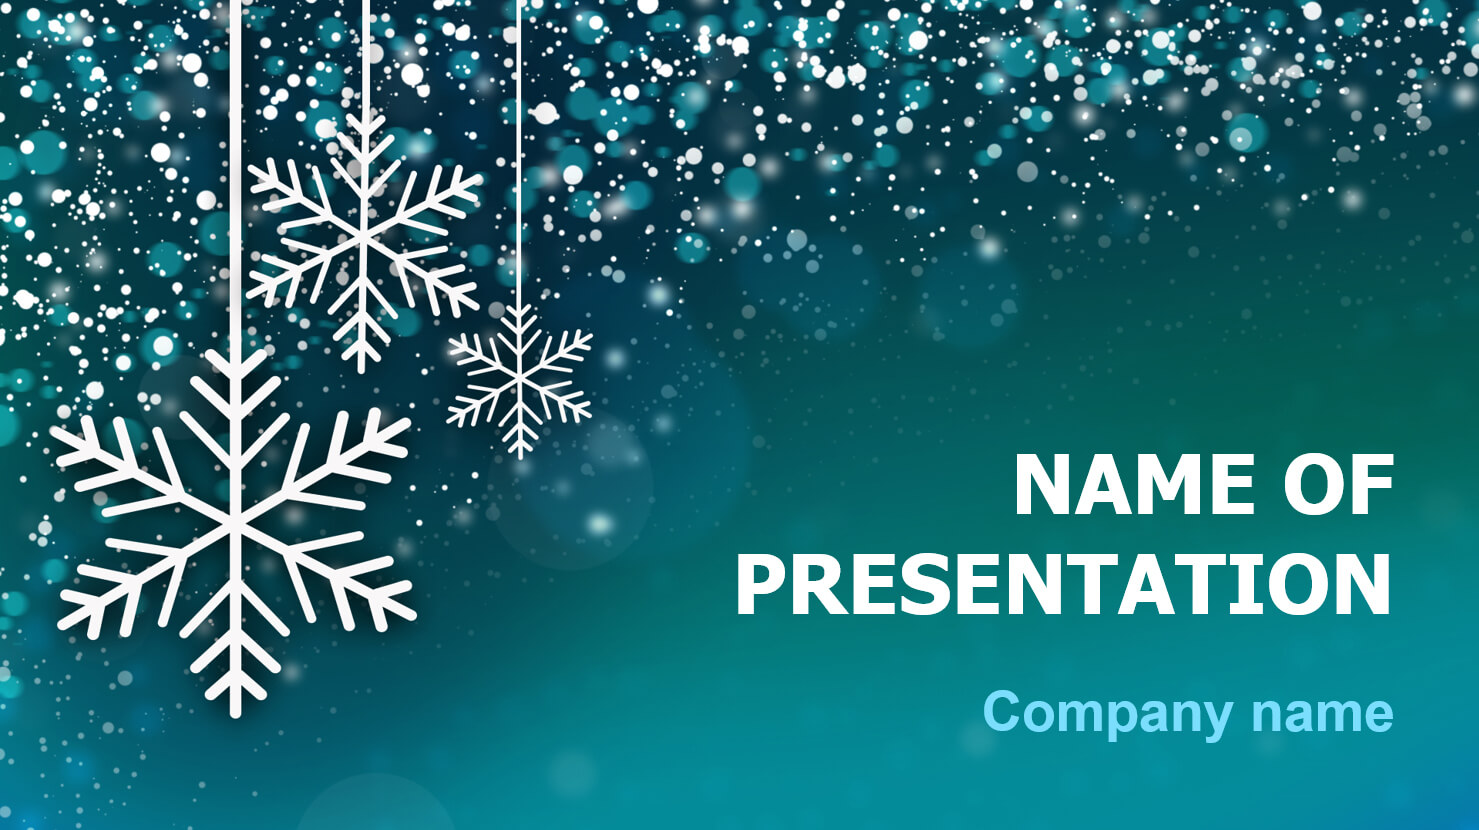 Download Free Snowing Snow Powerpoint Theme For Presentation Intended For Snow Powerpoint Template